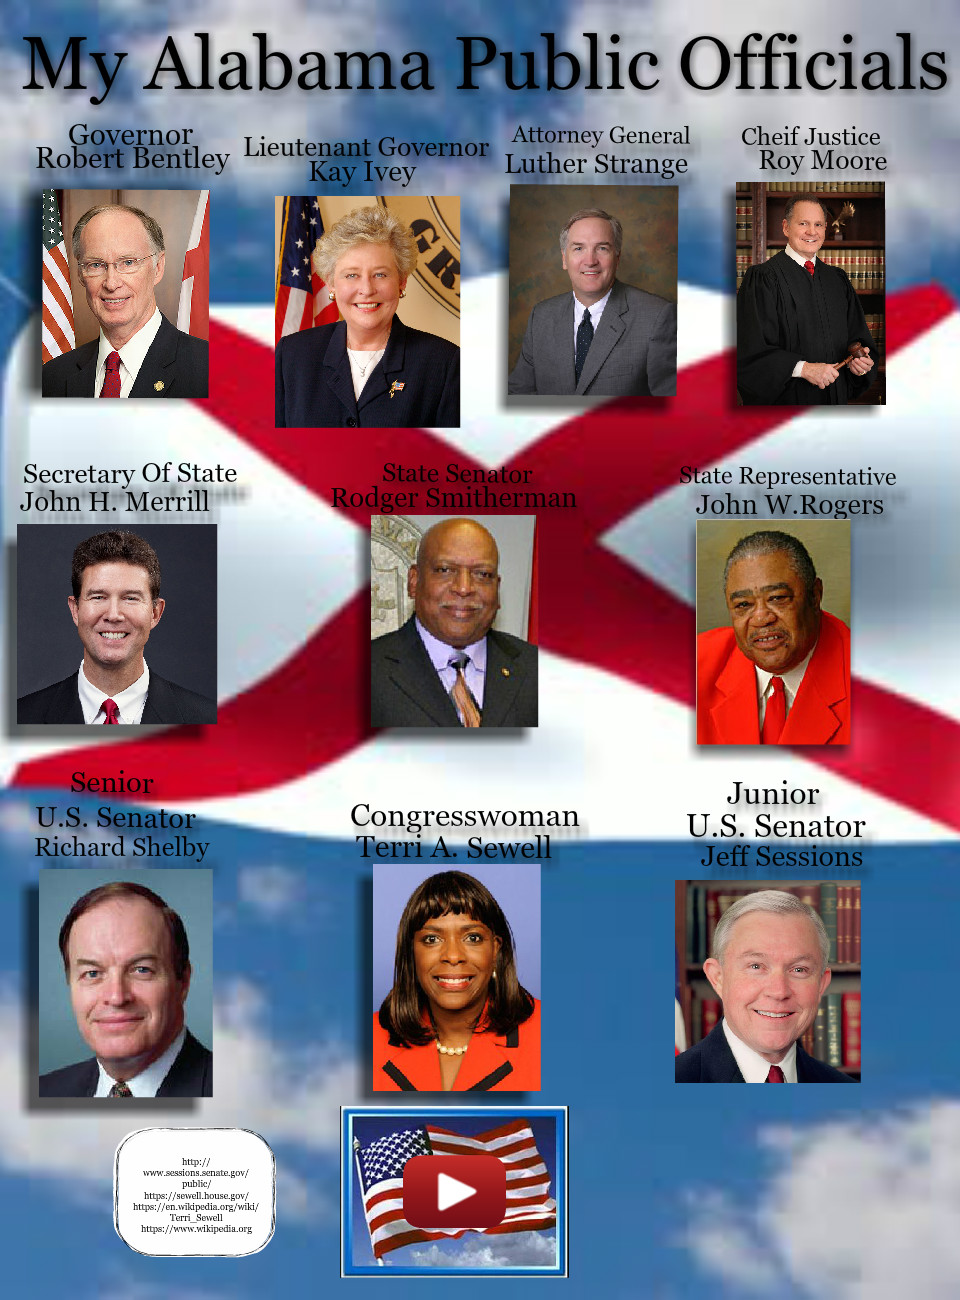 My Alabama Public Officials